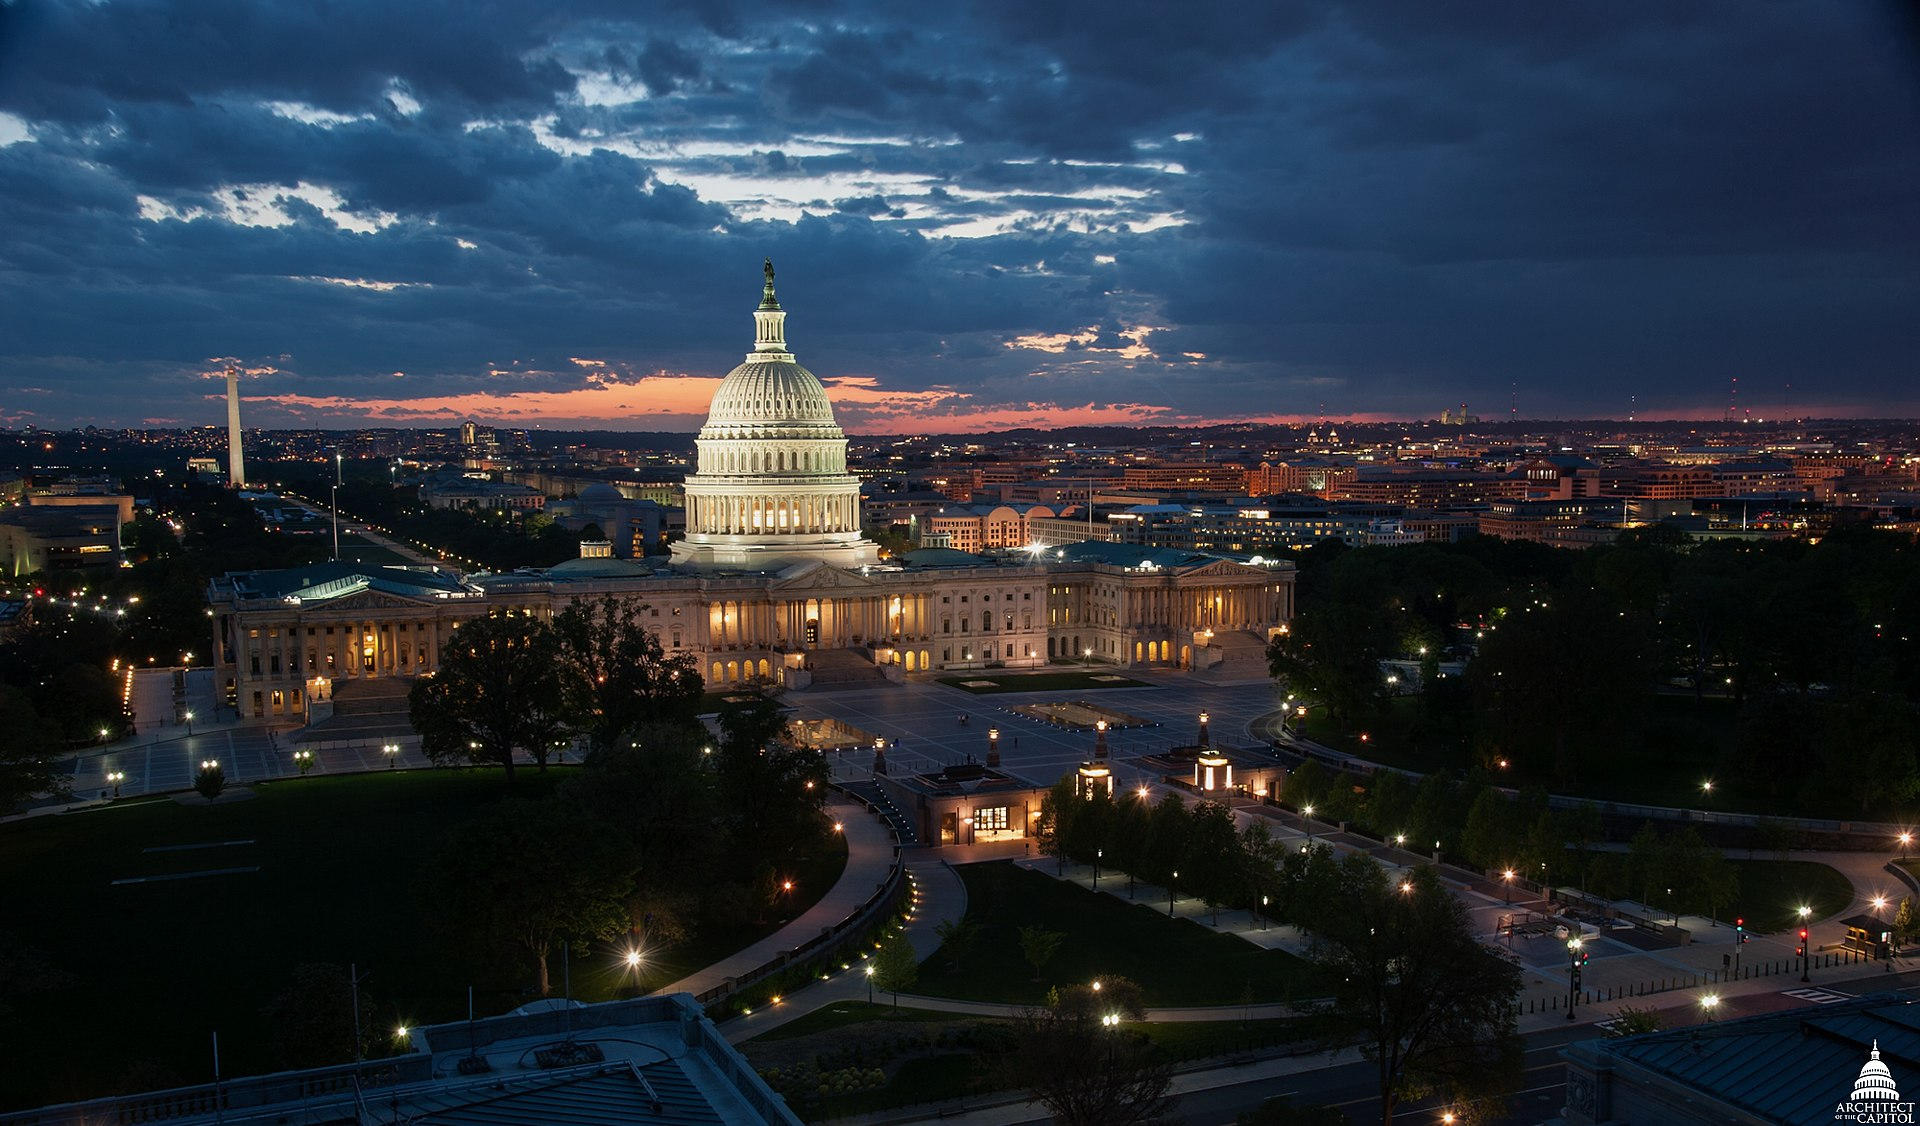 ¤ V2019 ¤ Topic Officiel - Page 3 1920px-Capitol_at_Dusk_View_from_Library_of_Congress_Jefferson_Building_%2814144445175%29